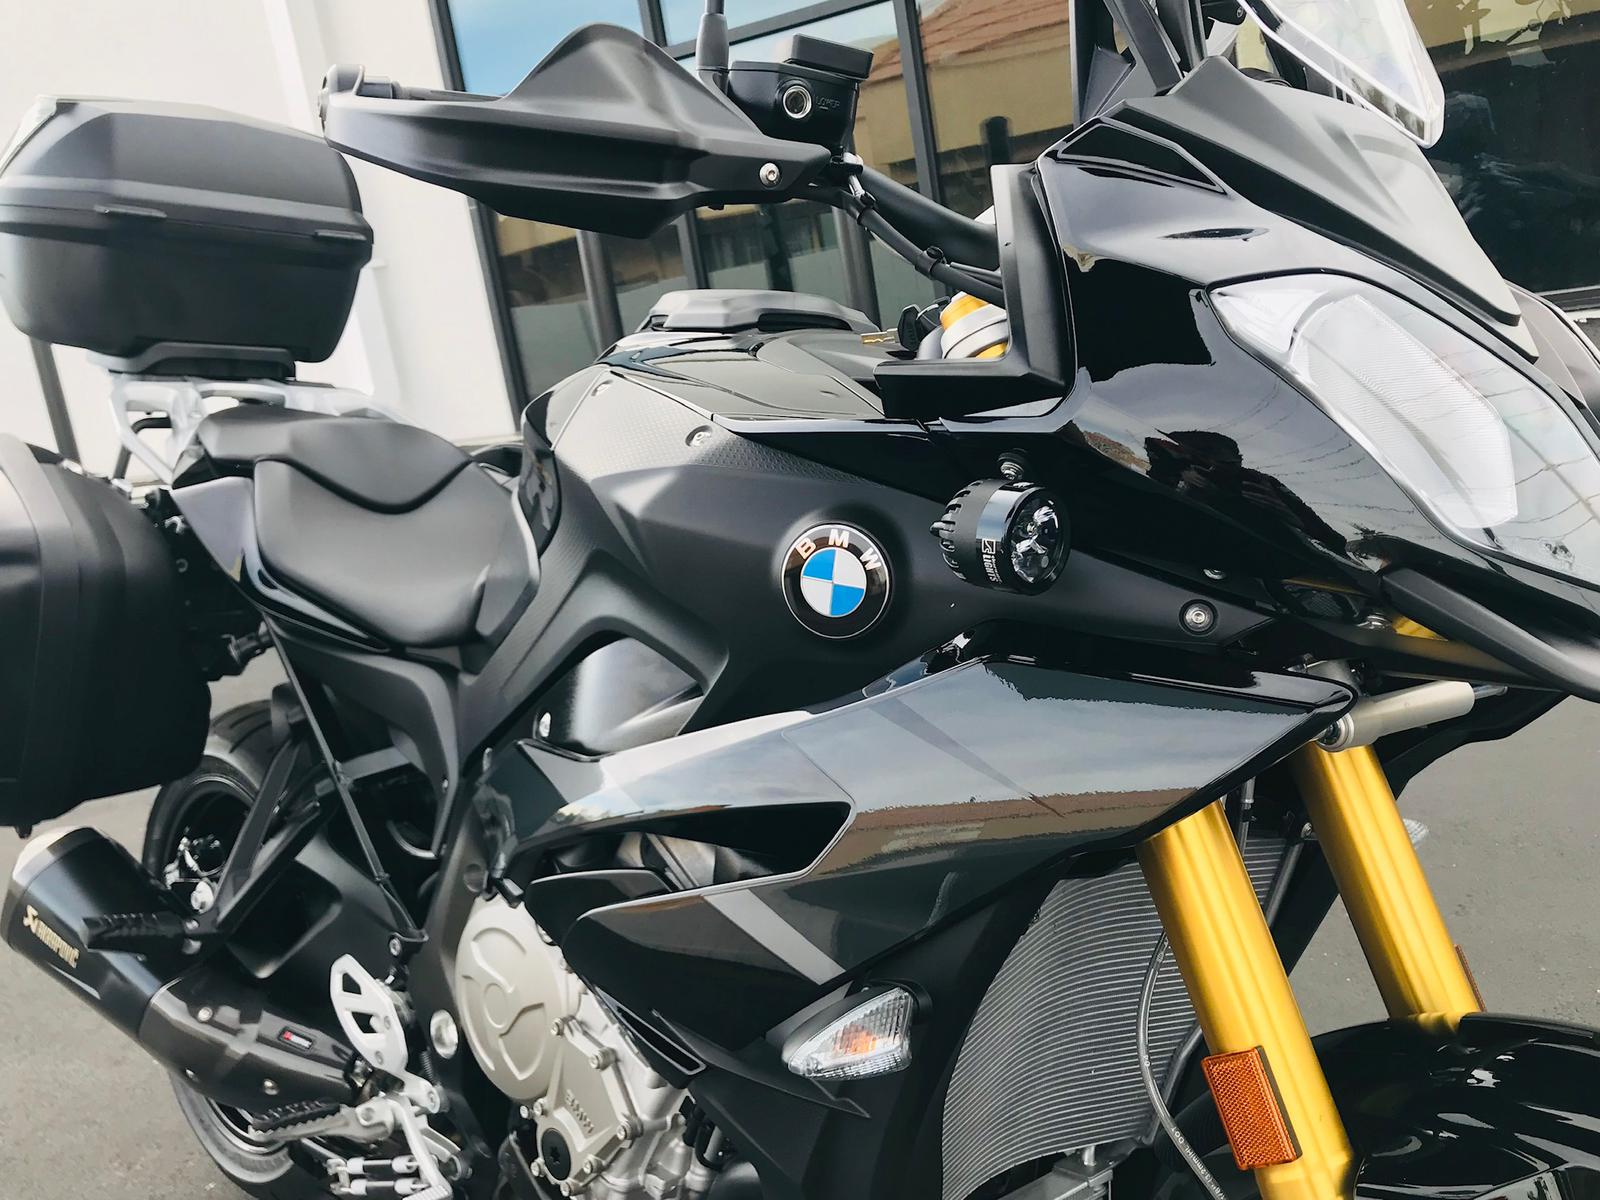 2019 Bmw S 1000 Xr Low Suspension Demo For Sale In Las Vegas Nv